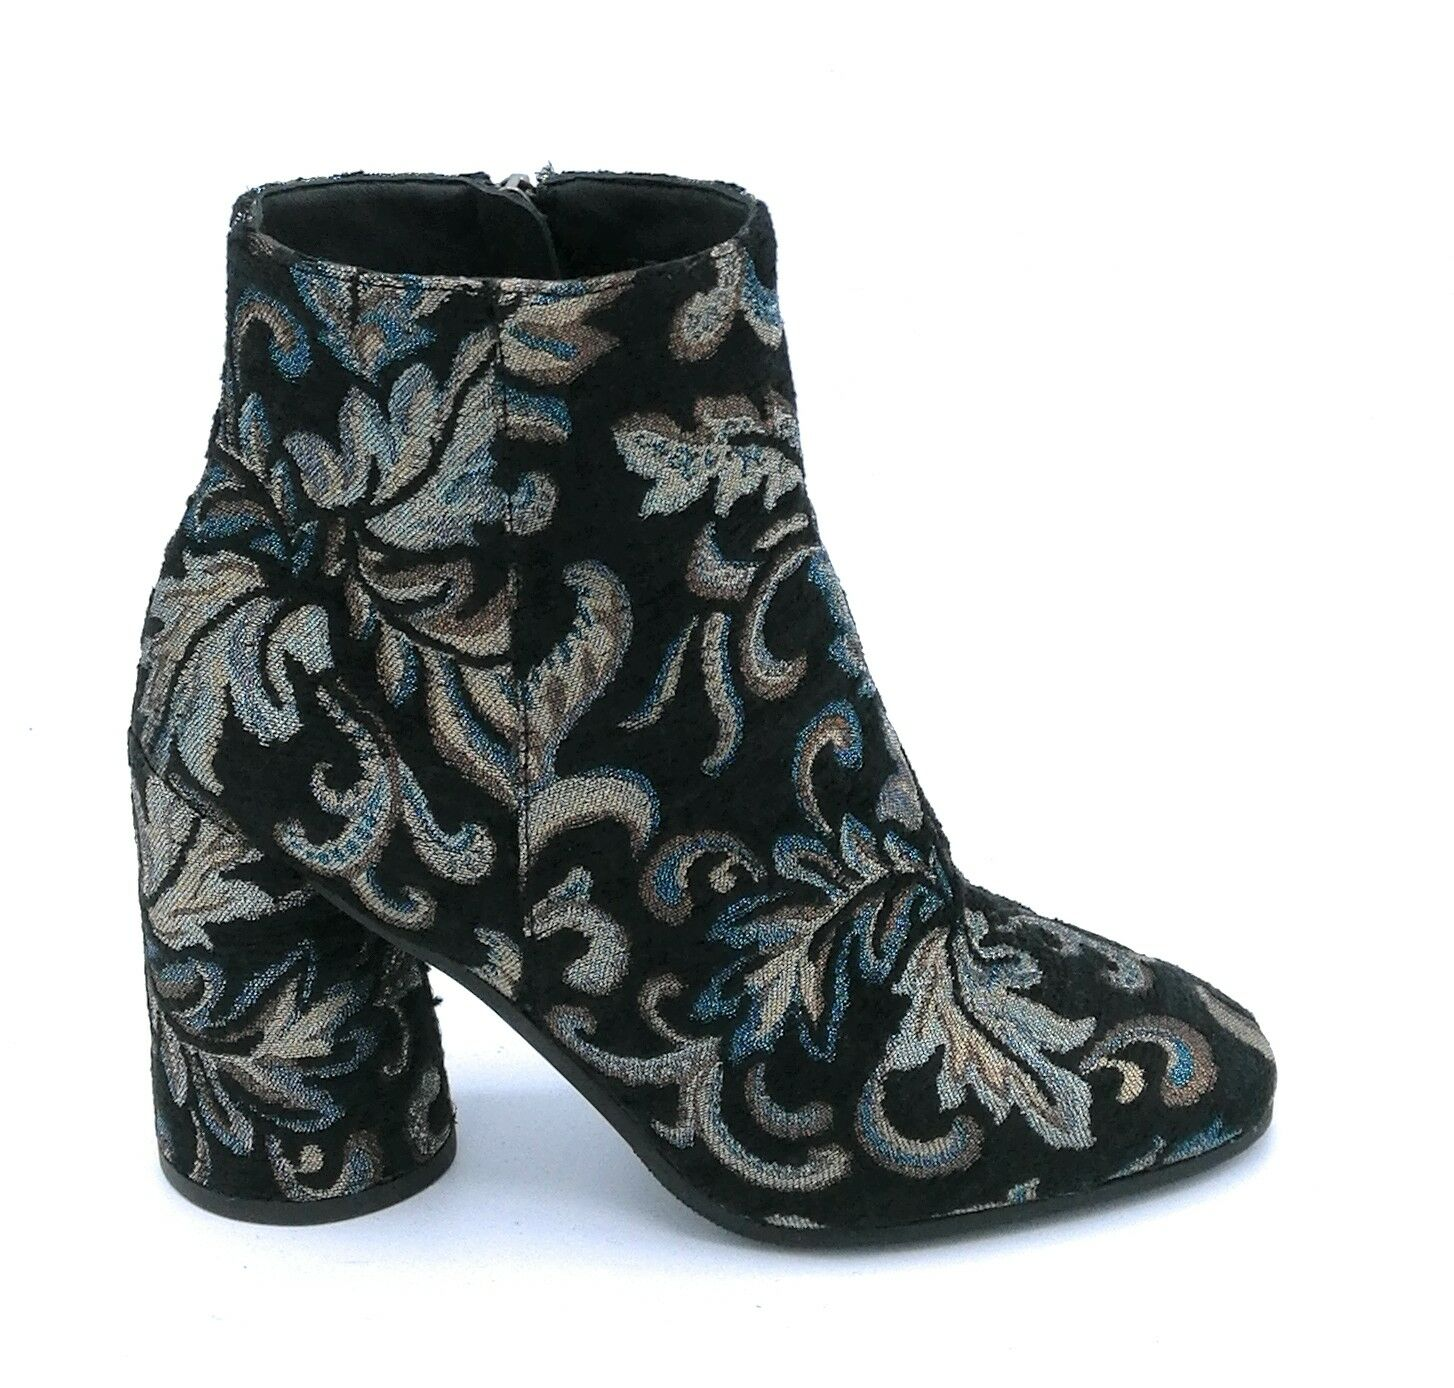 Zanon G4301 ankle boot lame black damasked zippered zippered zippered e8f319